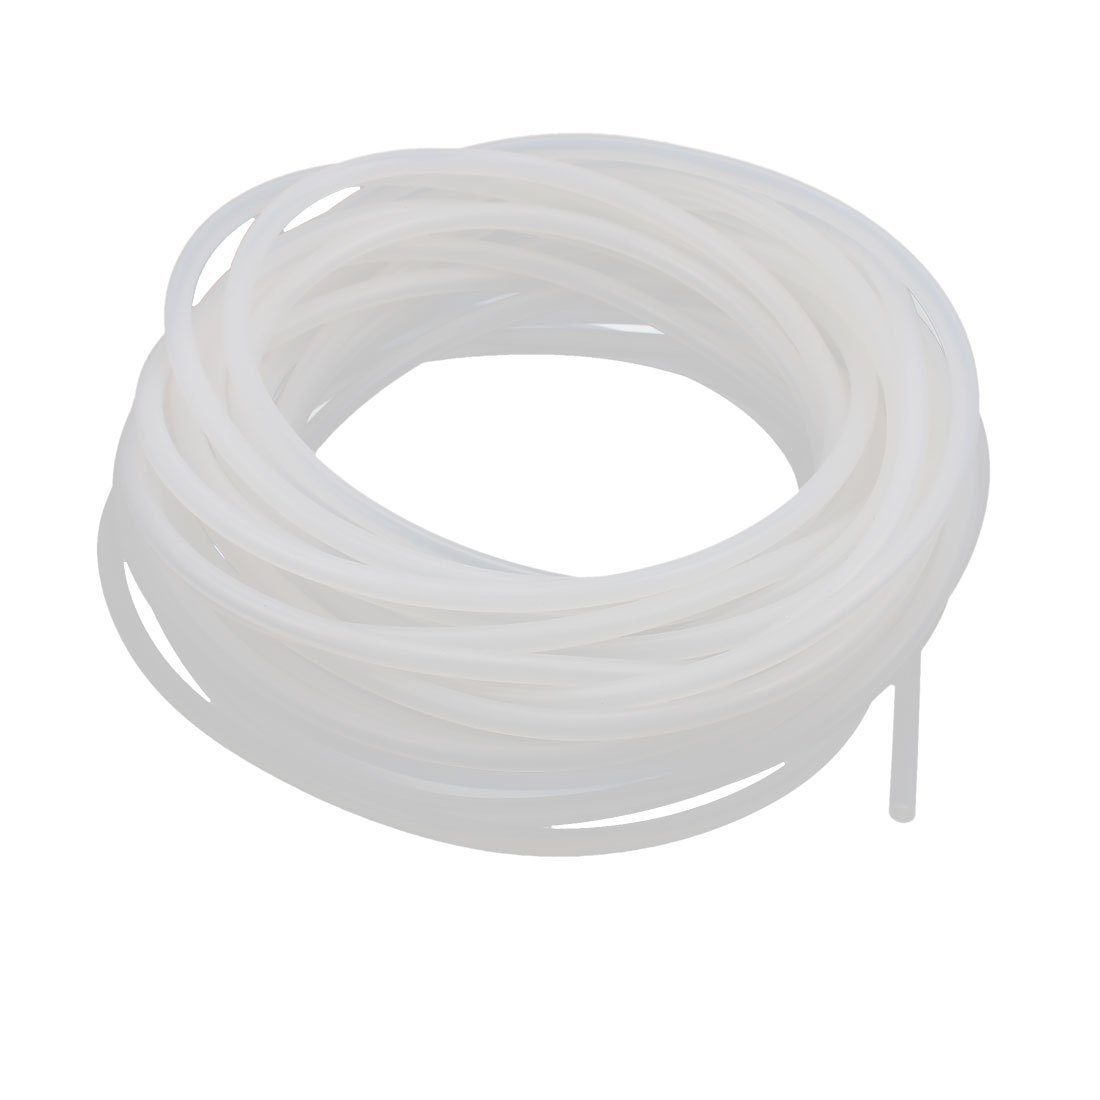 sourcingmap Silicone Tube 4mm ID X 6mm OD 32.8 Feet Flexible Silicone Rubber Tubing Water Air Hose Pipe Translucent for Pump Transfer